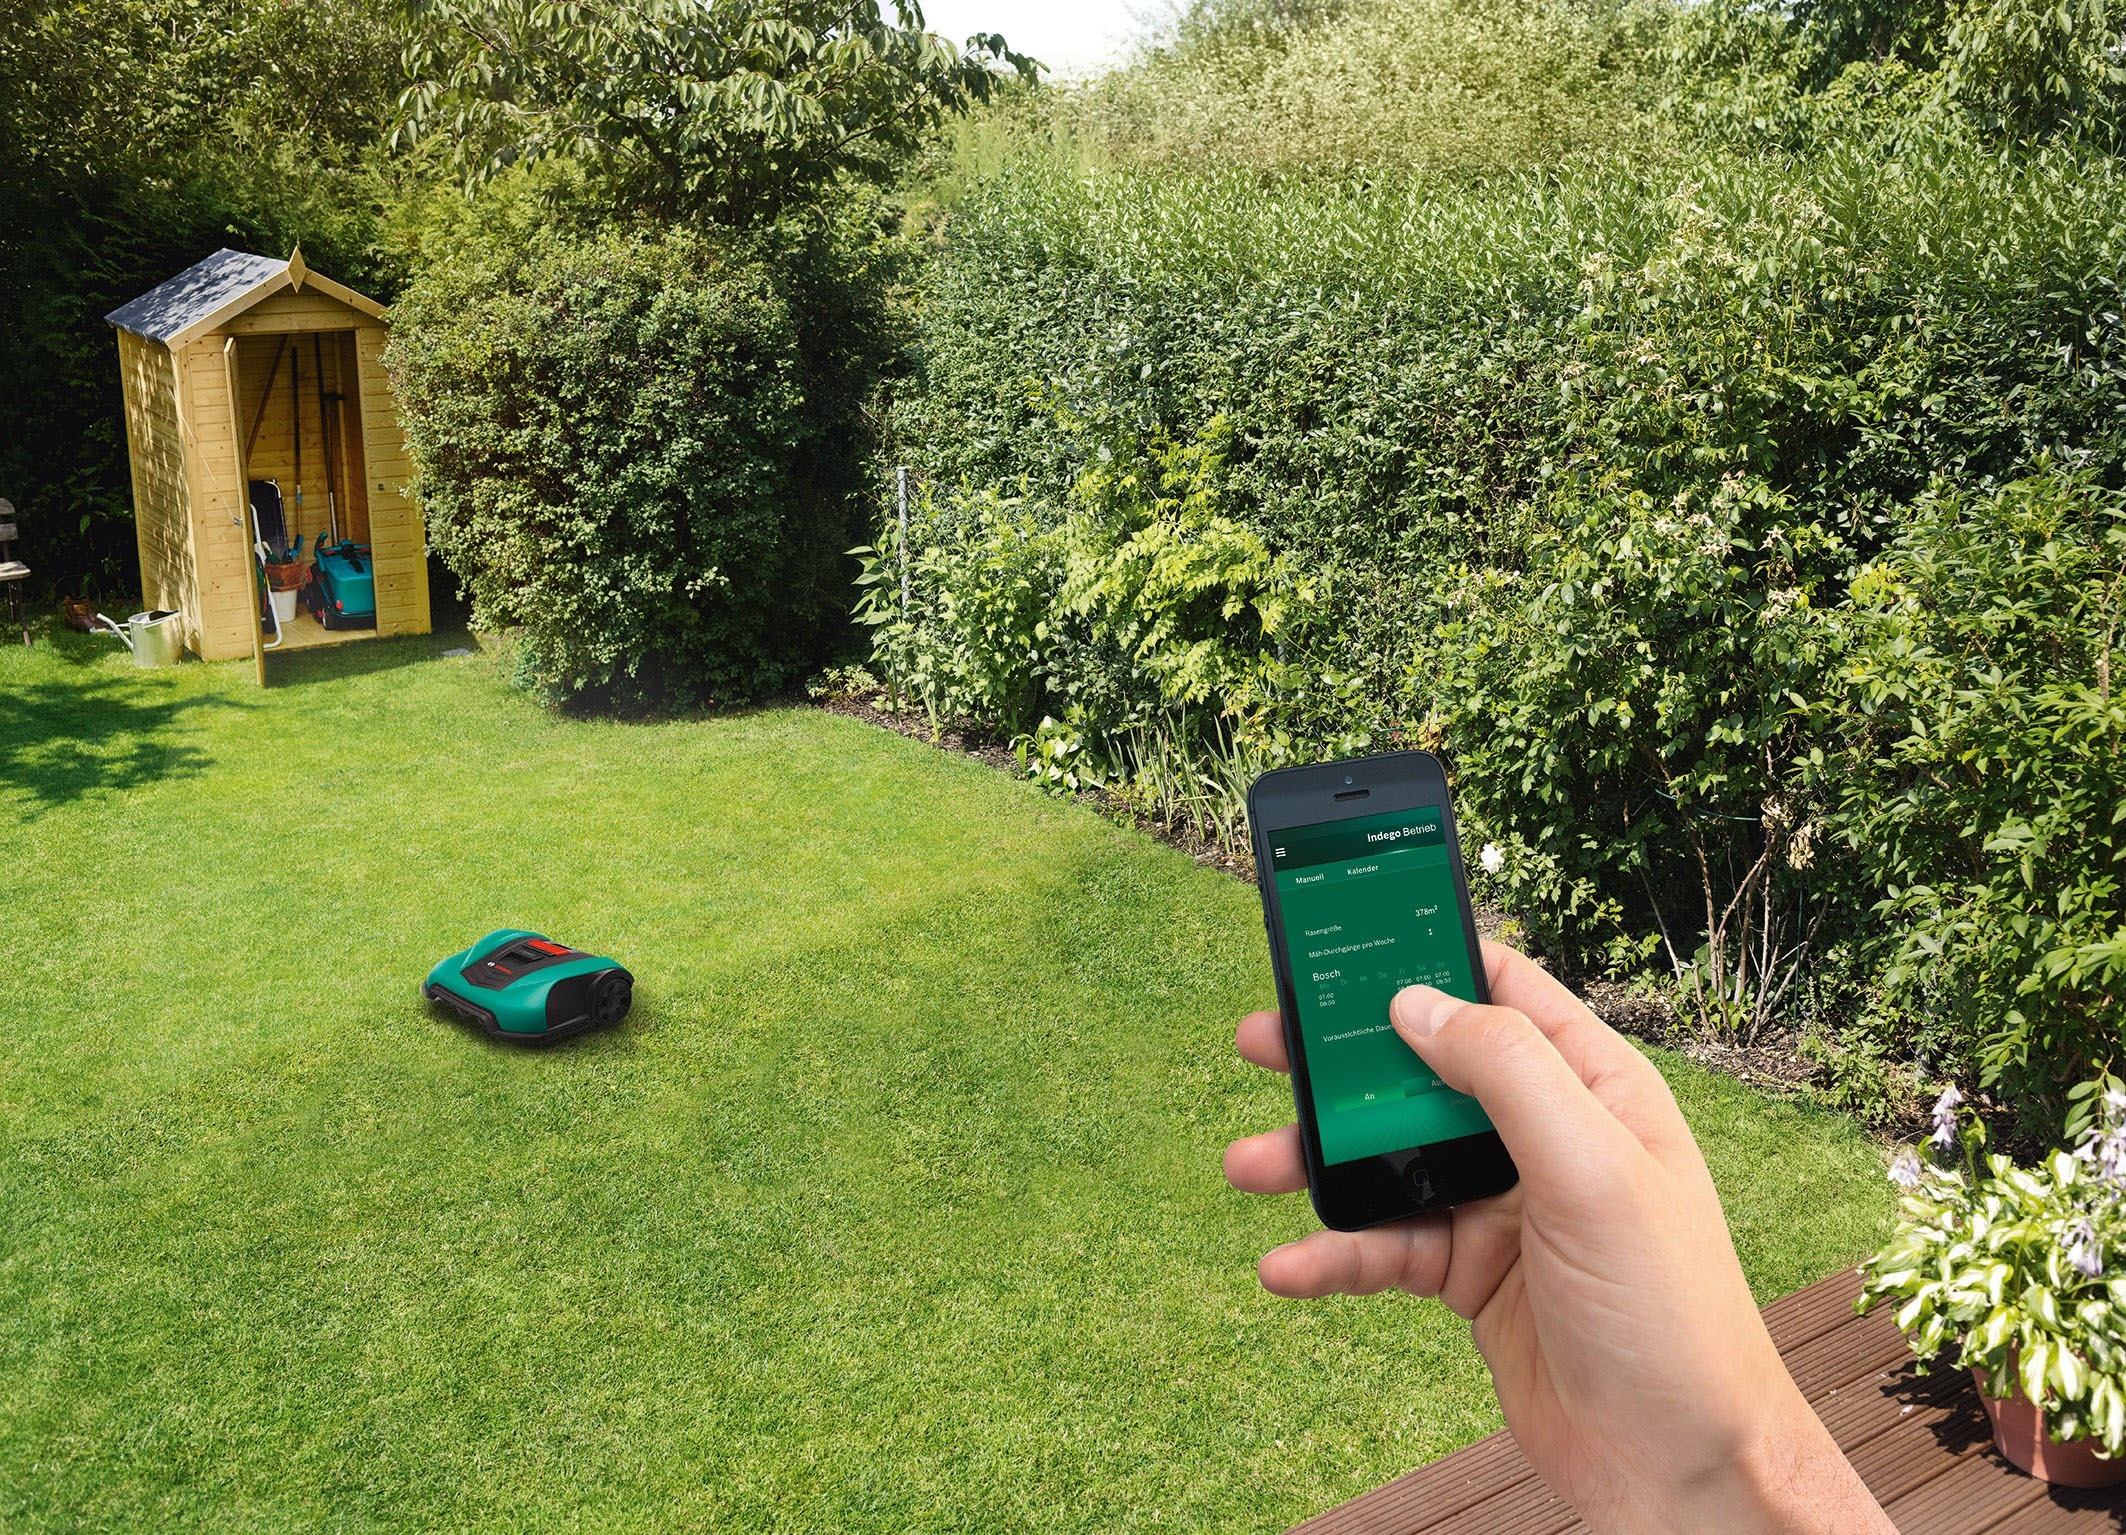 Connected lawn mower Indego and a mobile phone with the user app